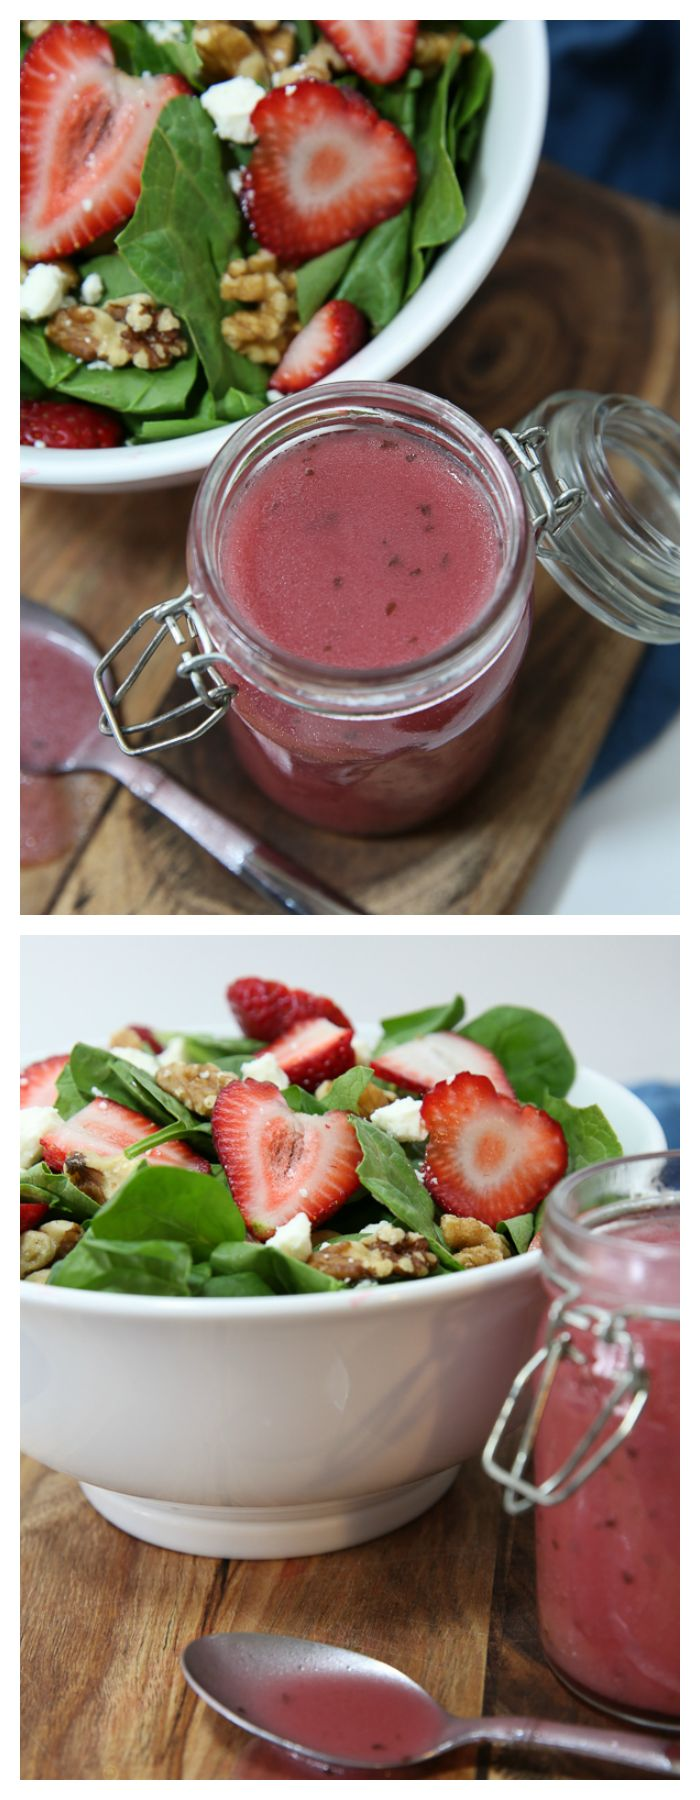 Strawberry Balsamic Vinaigrette Salad Dressing.